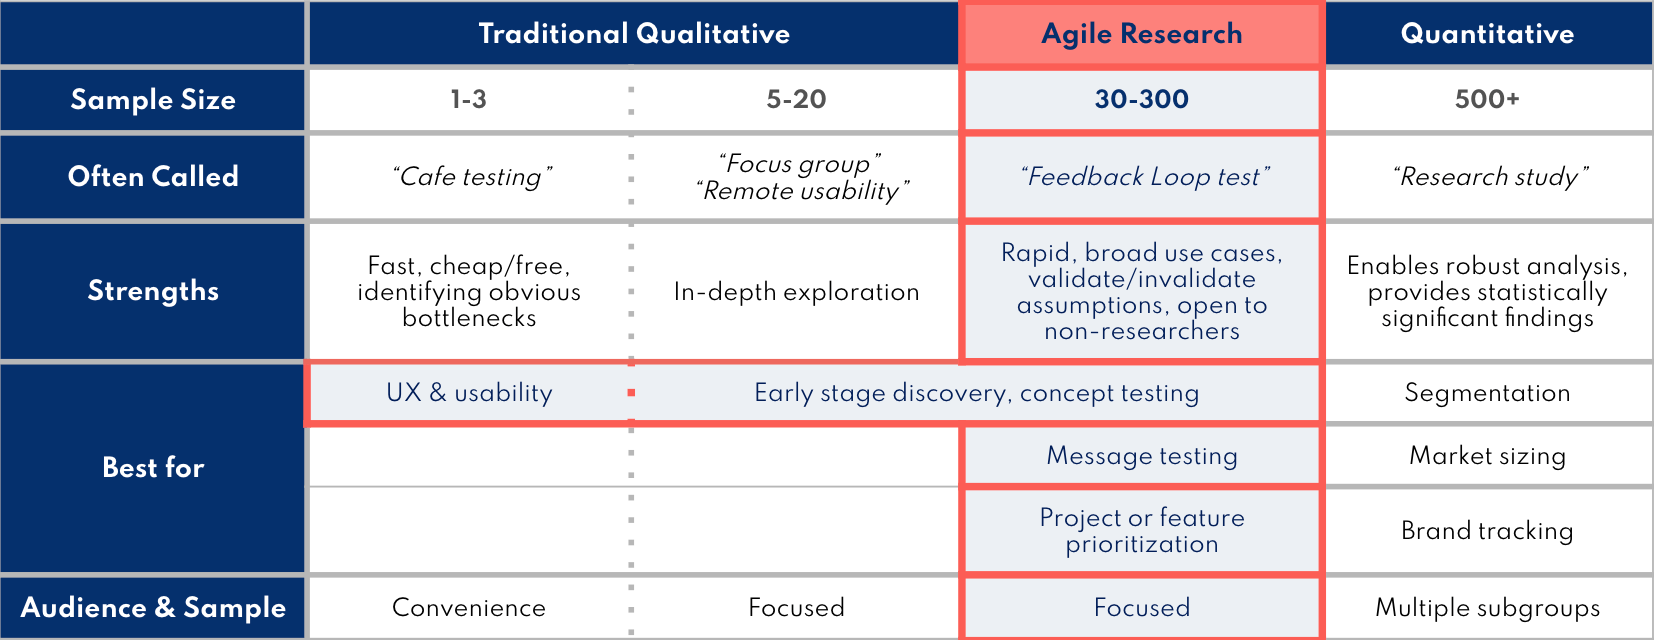 Use cases for quantitative, qualitative, and agile research